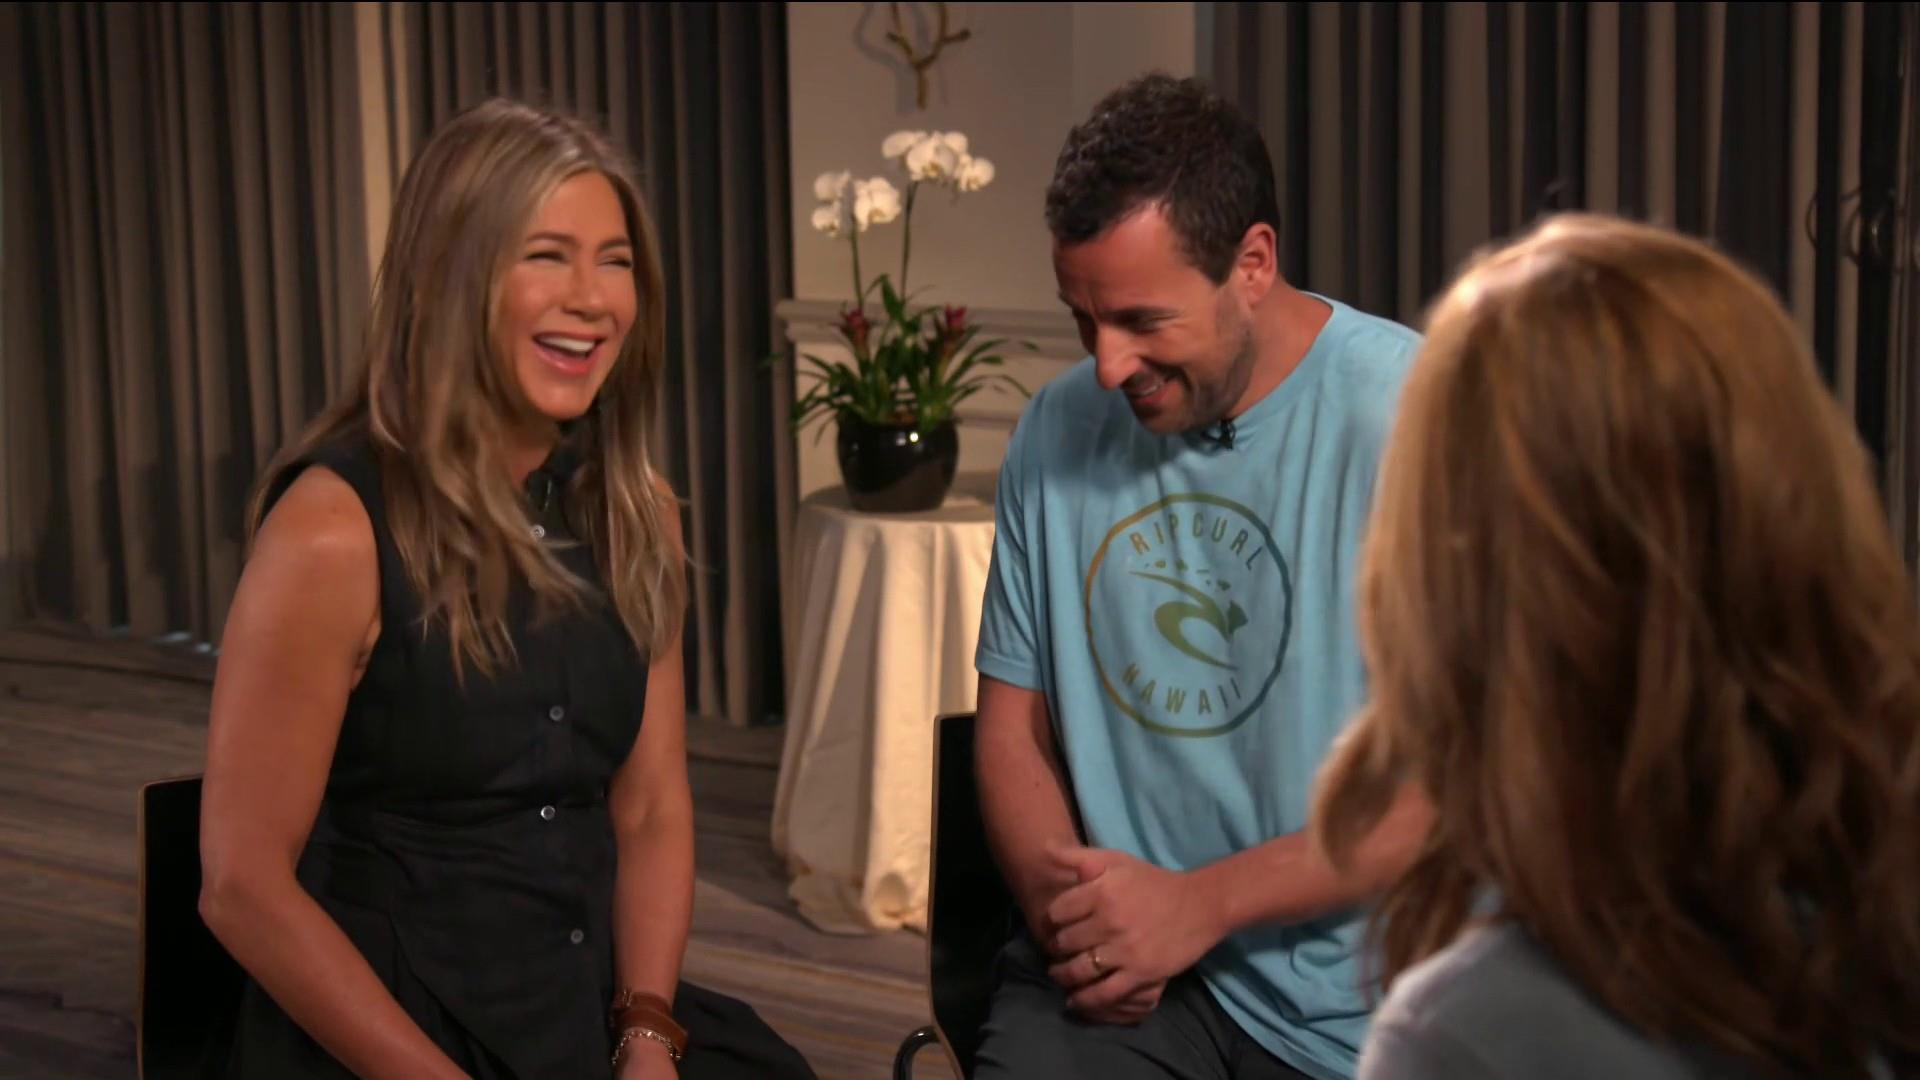 Jennifer Aniston and Adam Sandler detail their 30-year friendship